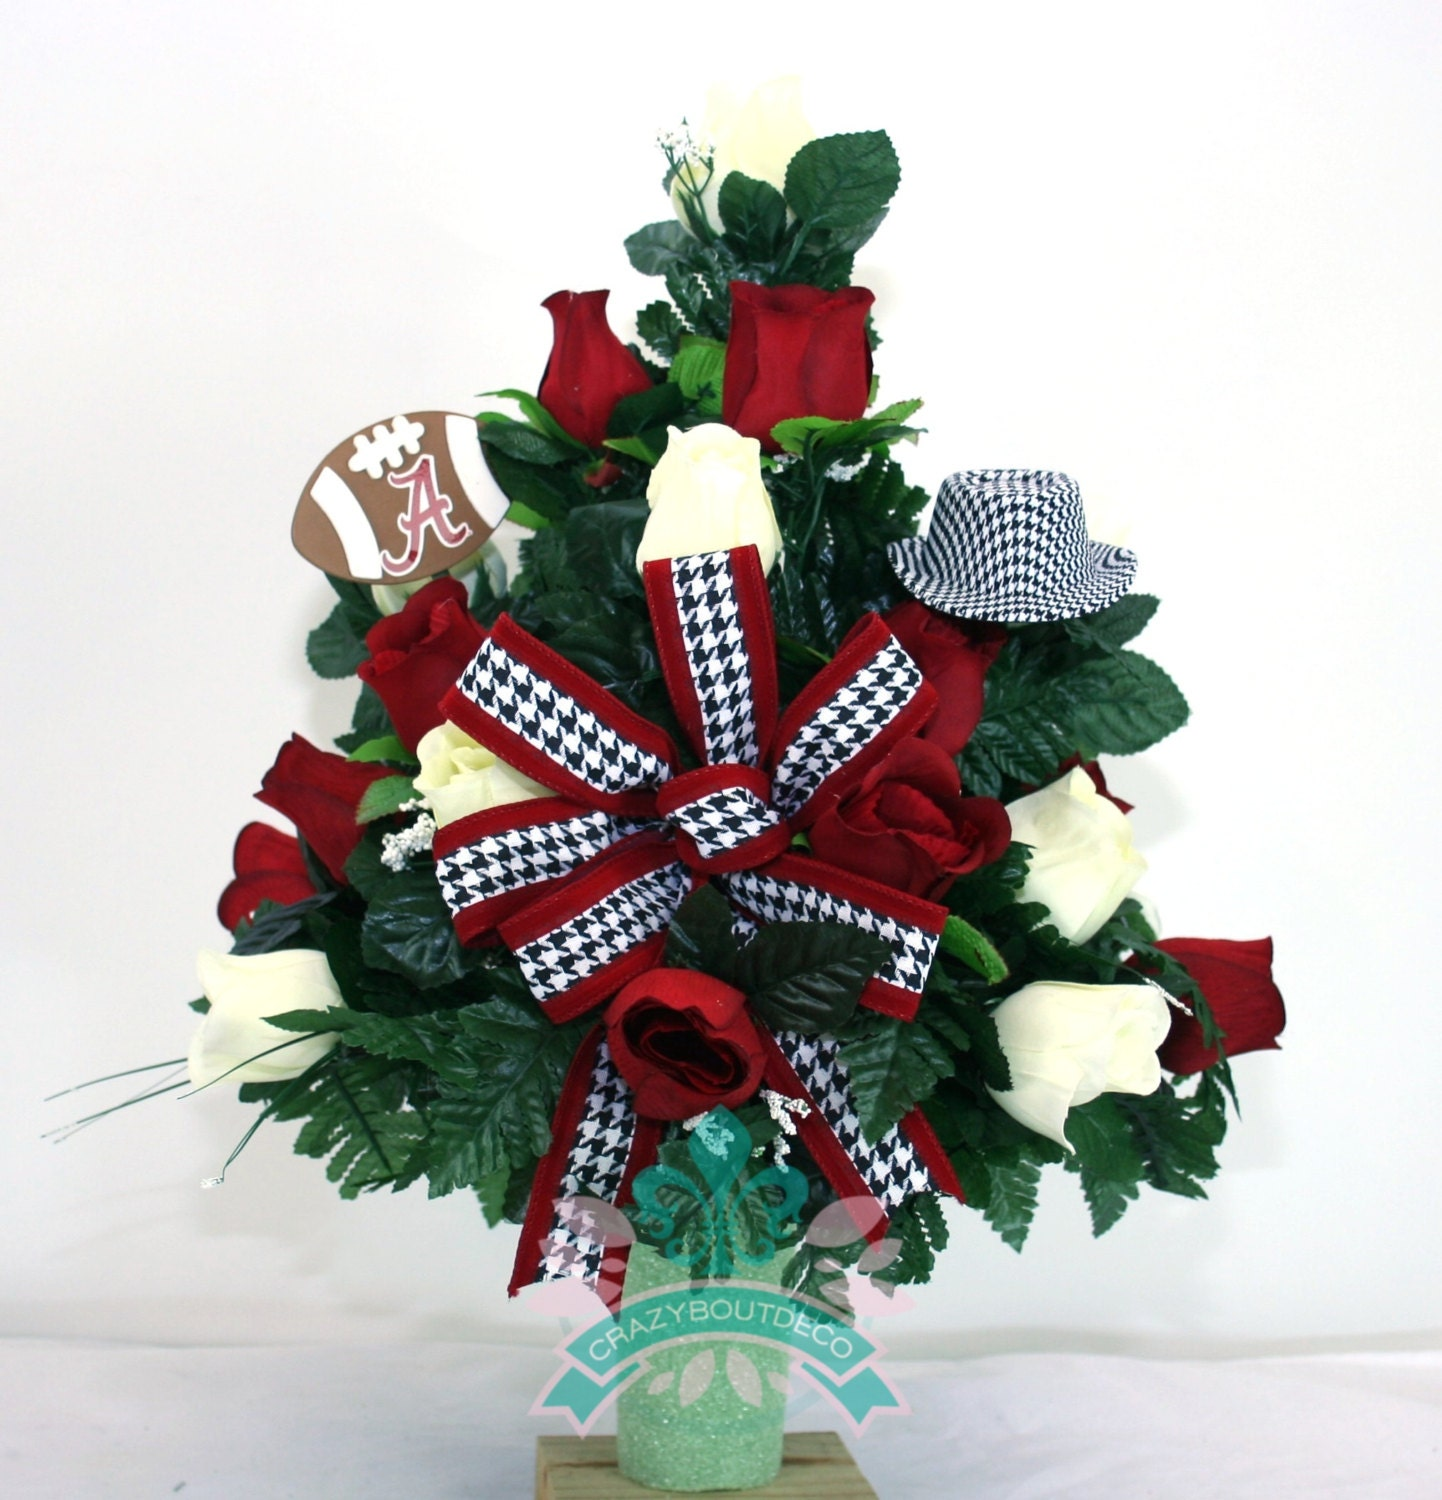 heaven for holiday wreaths queen of flowers vase mt christmas flower illinois memorials and home vases sons cemetery hillside bertacchi carmel